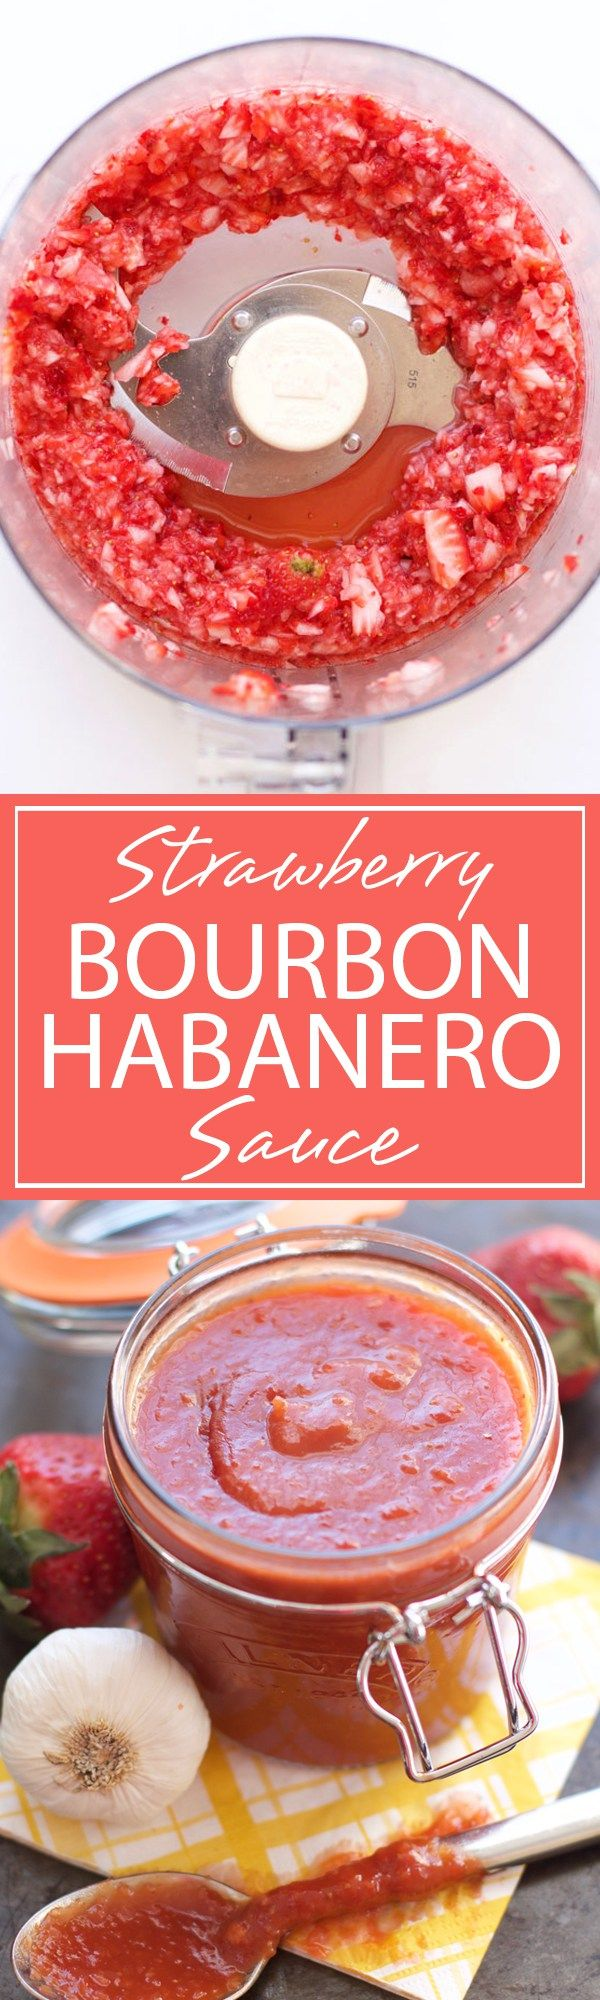 Strawberry Bourbon Habanero BBQ Sauce | Sweet, oaky and spicy flavors are bursting in this Strawberry Bourbon Habanero BBQ Sauce. Get ready to use this recipe for all your grilling adventures! | forkknifeandlove.com                                                                                                                                                                                 More